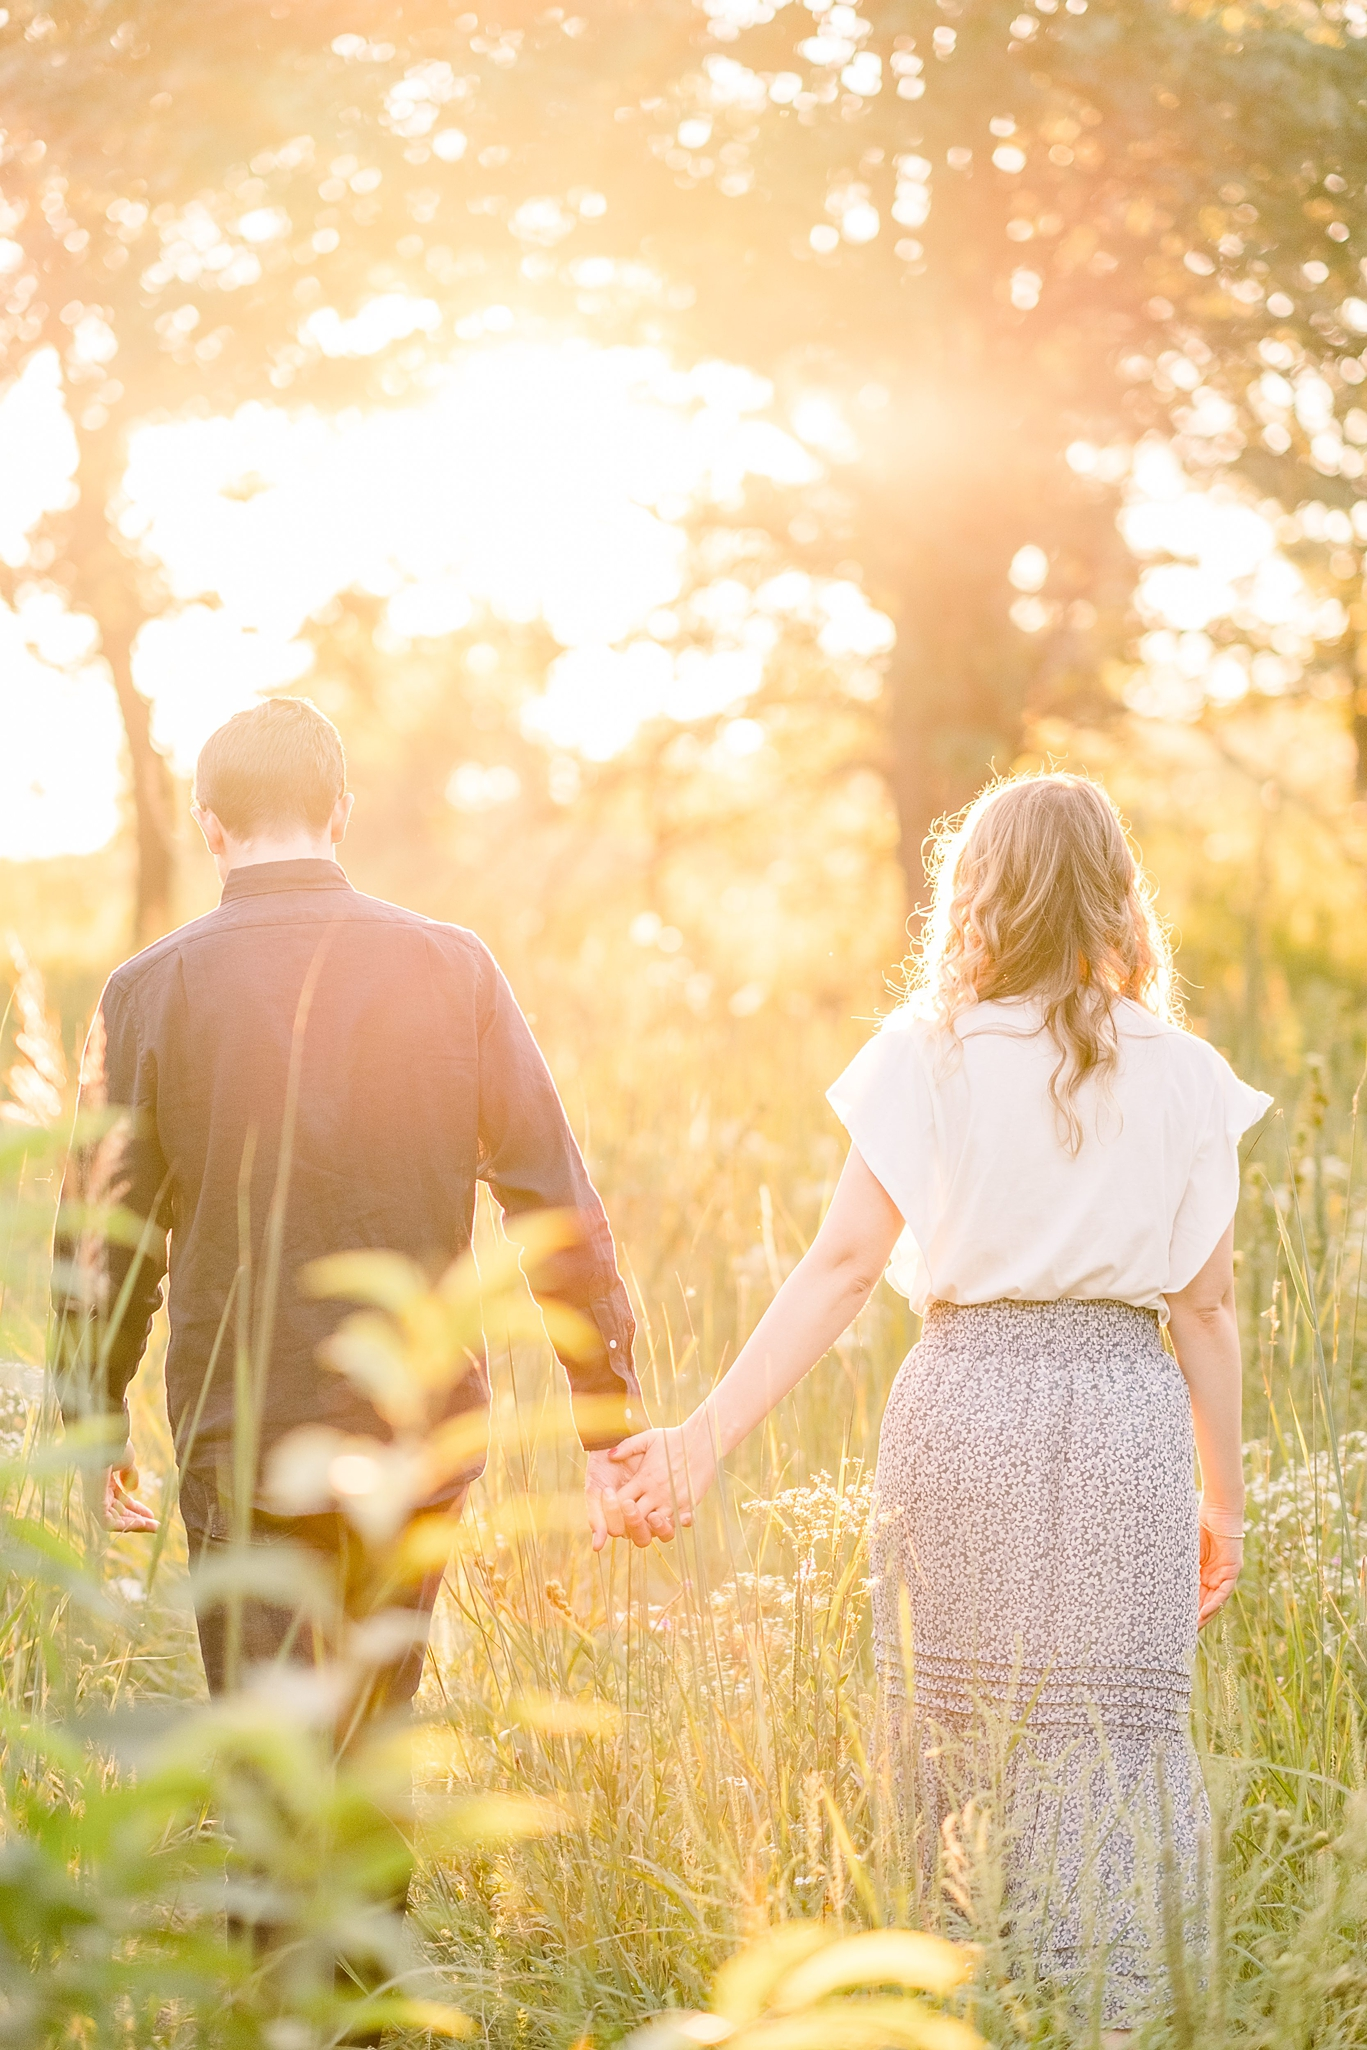 Spring Green, WI Engagement Photographers - Larissa Marie Photography